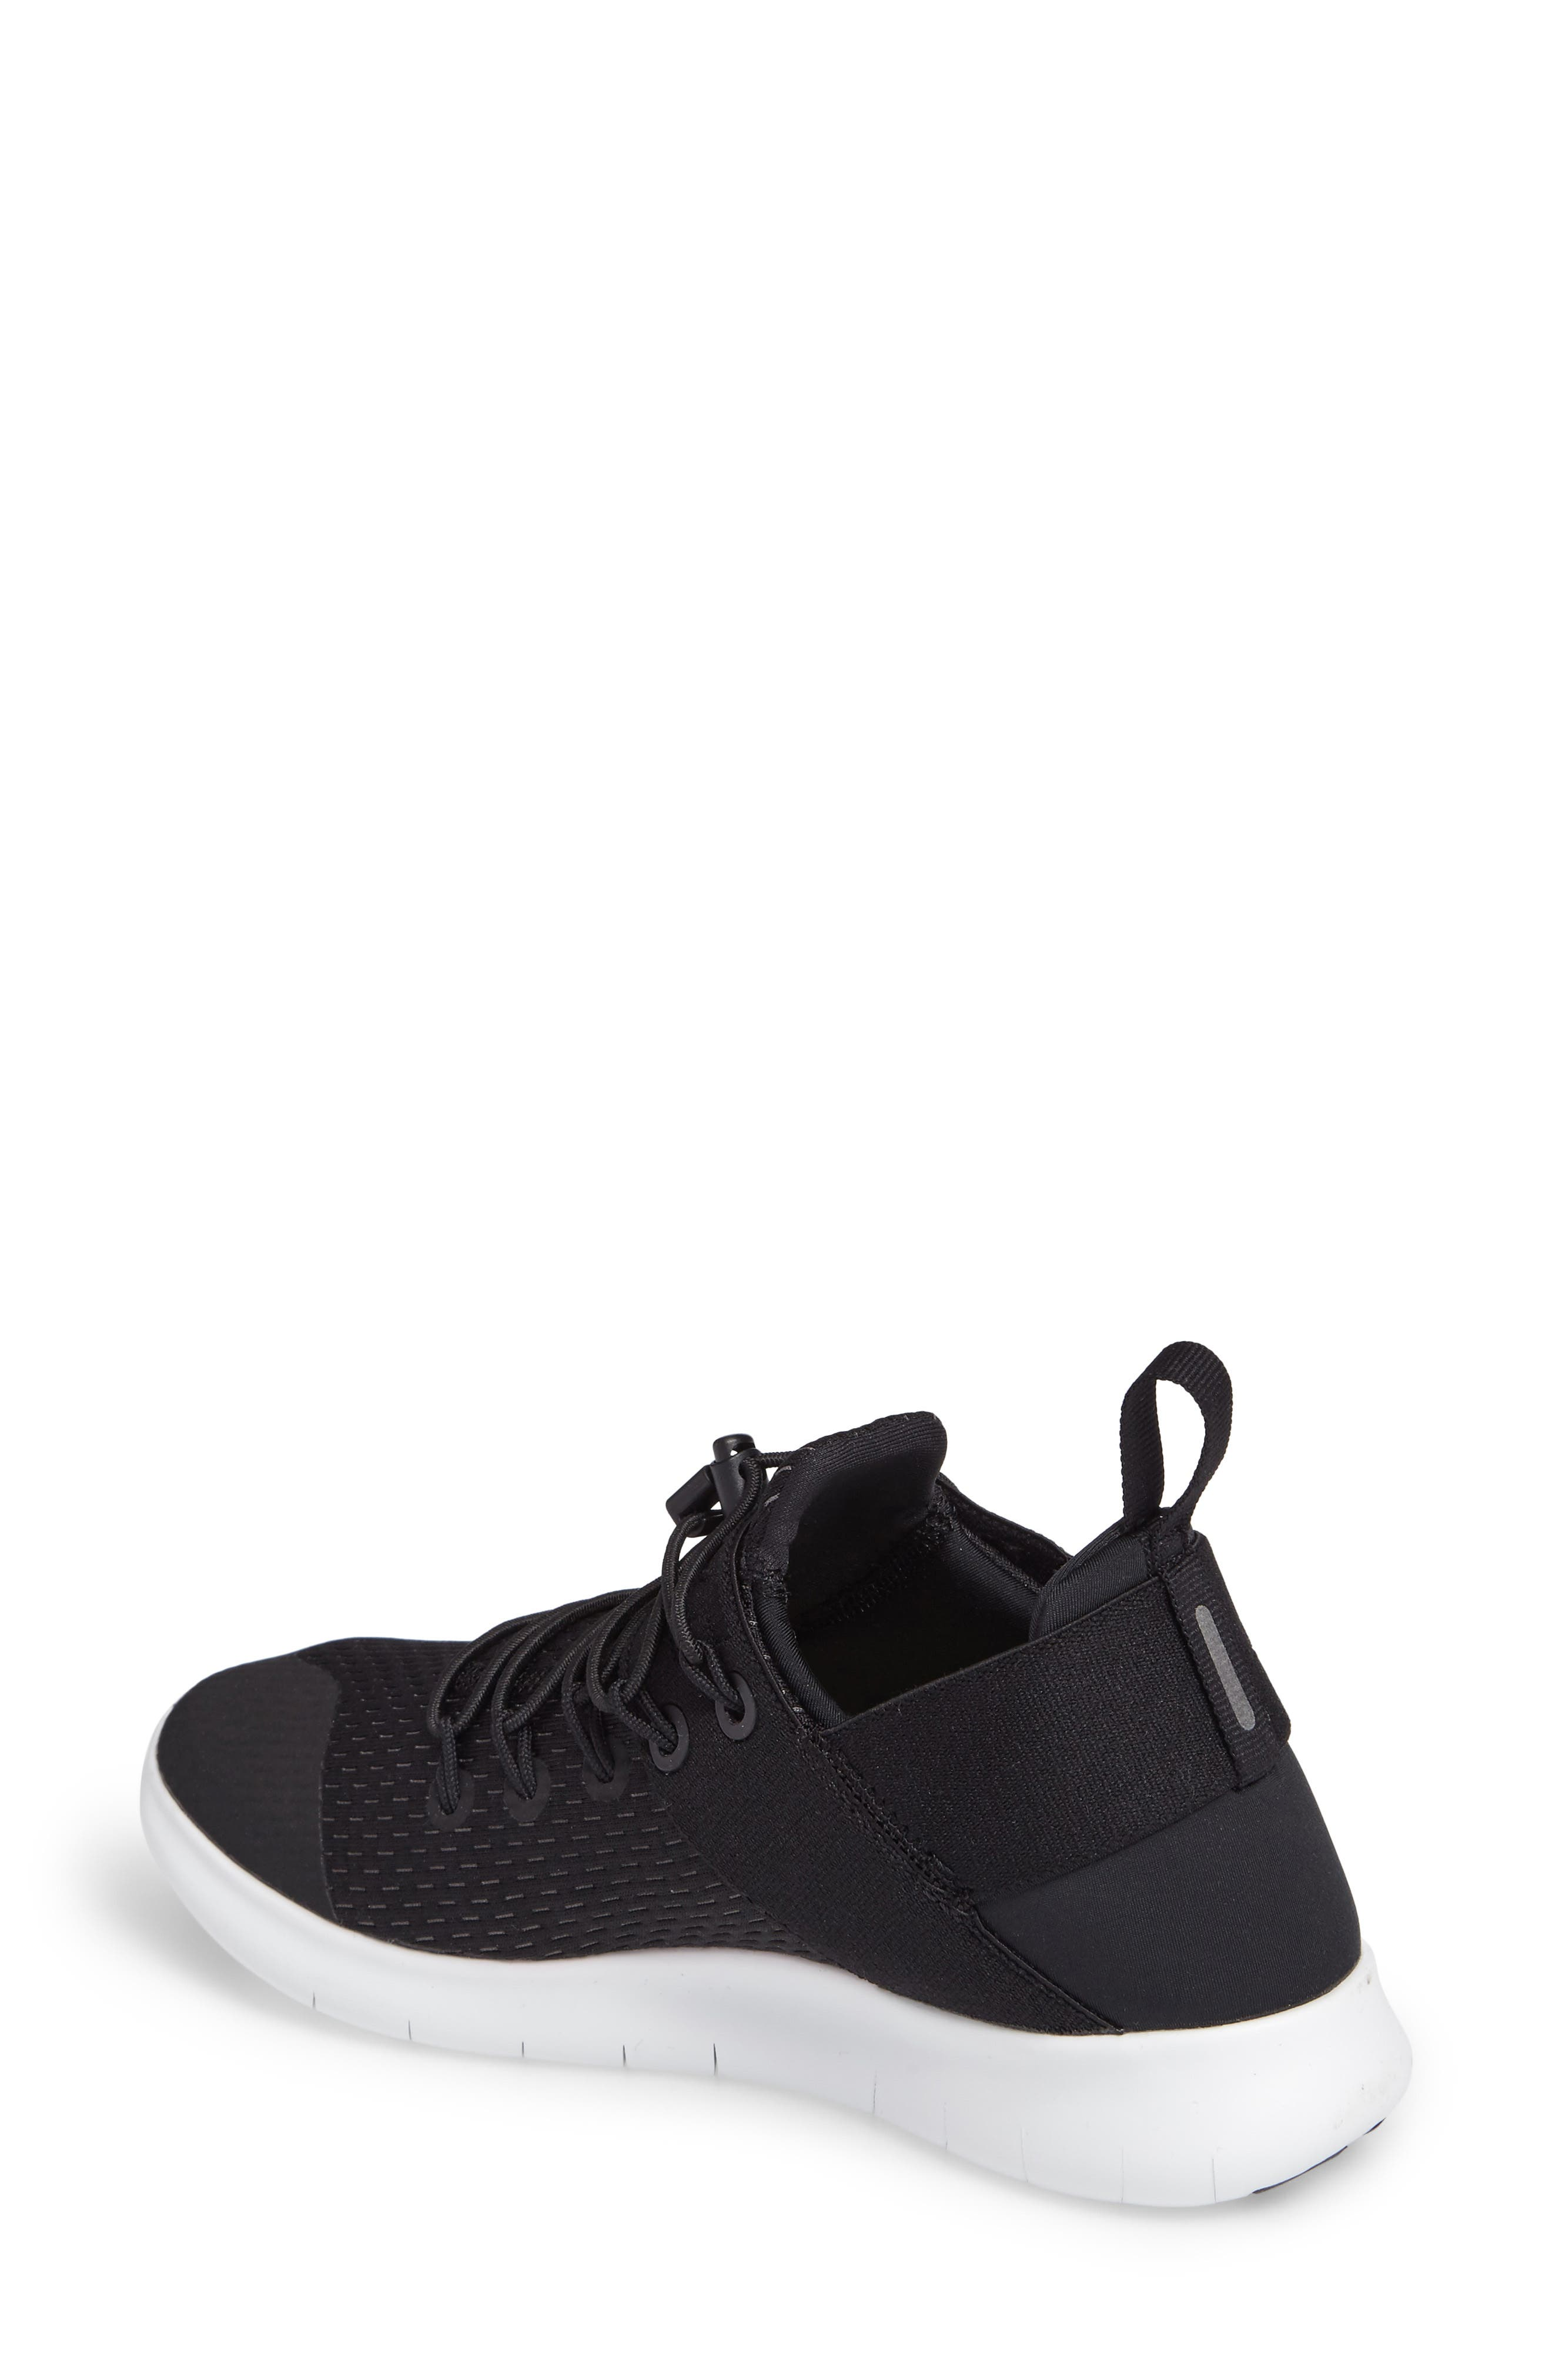 Free RN CMTR Running Shoe,                             Alternate thumbnail 2, color,                             Black/ Anthracite/ Off White